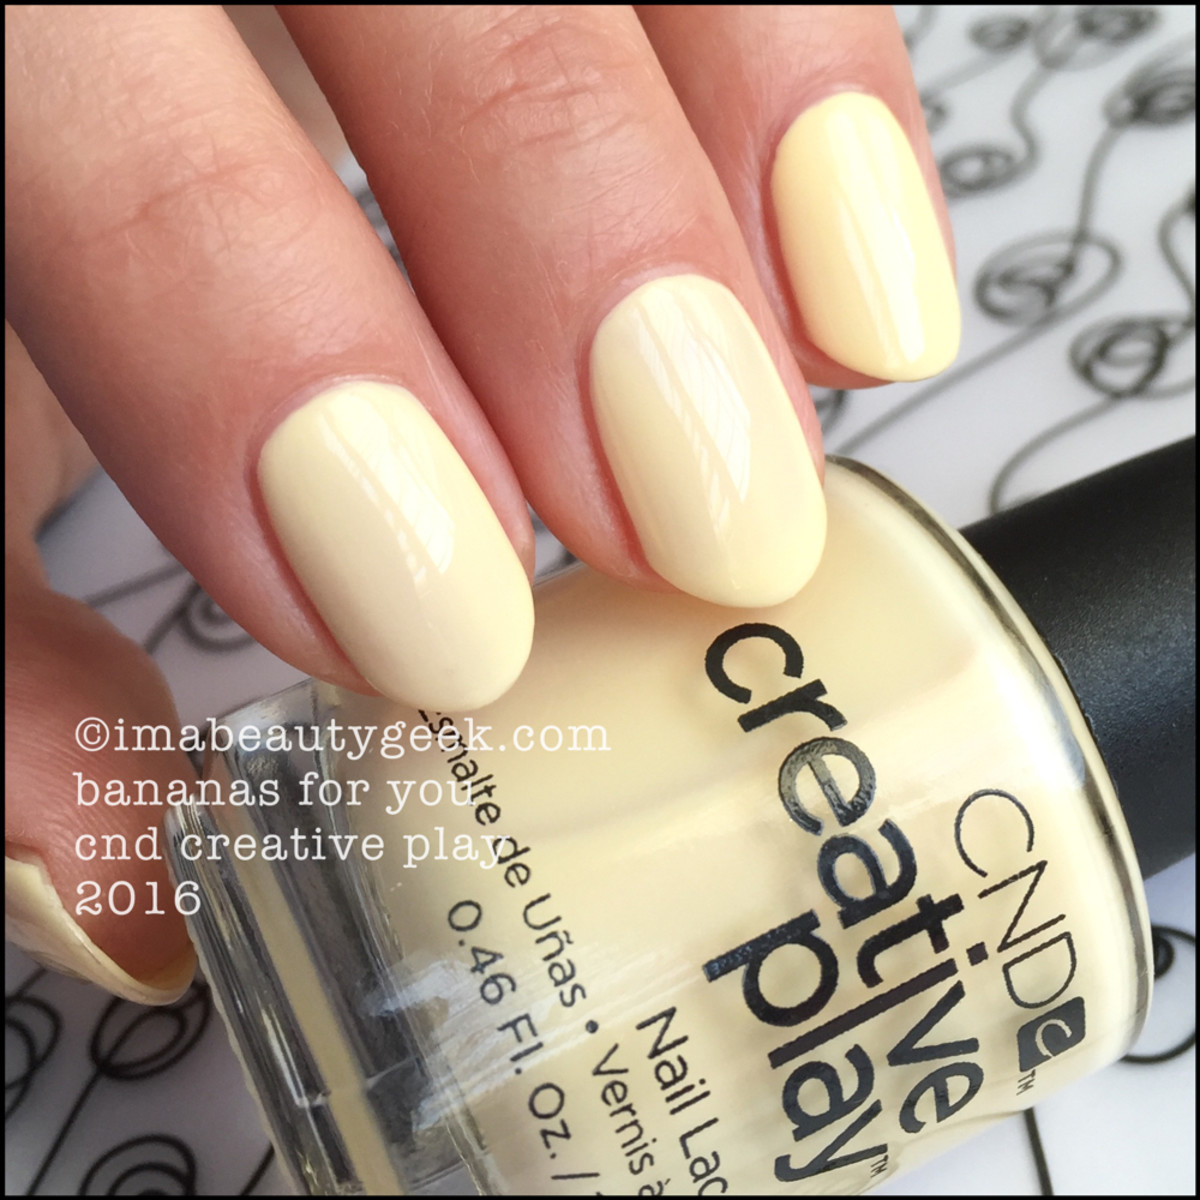 CND Creative Play Bananas For You_CND Creative Play Nail Lacquer 2016